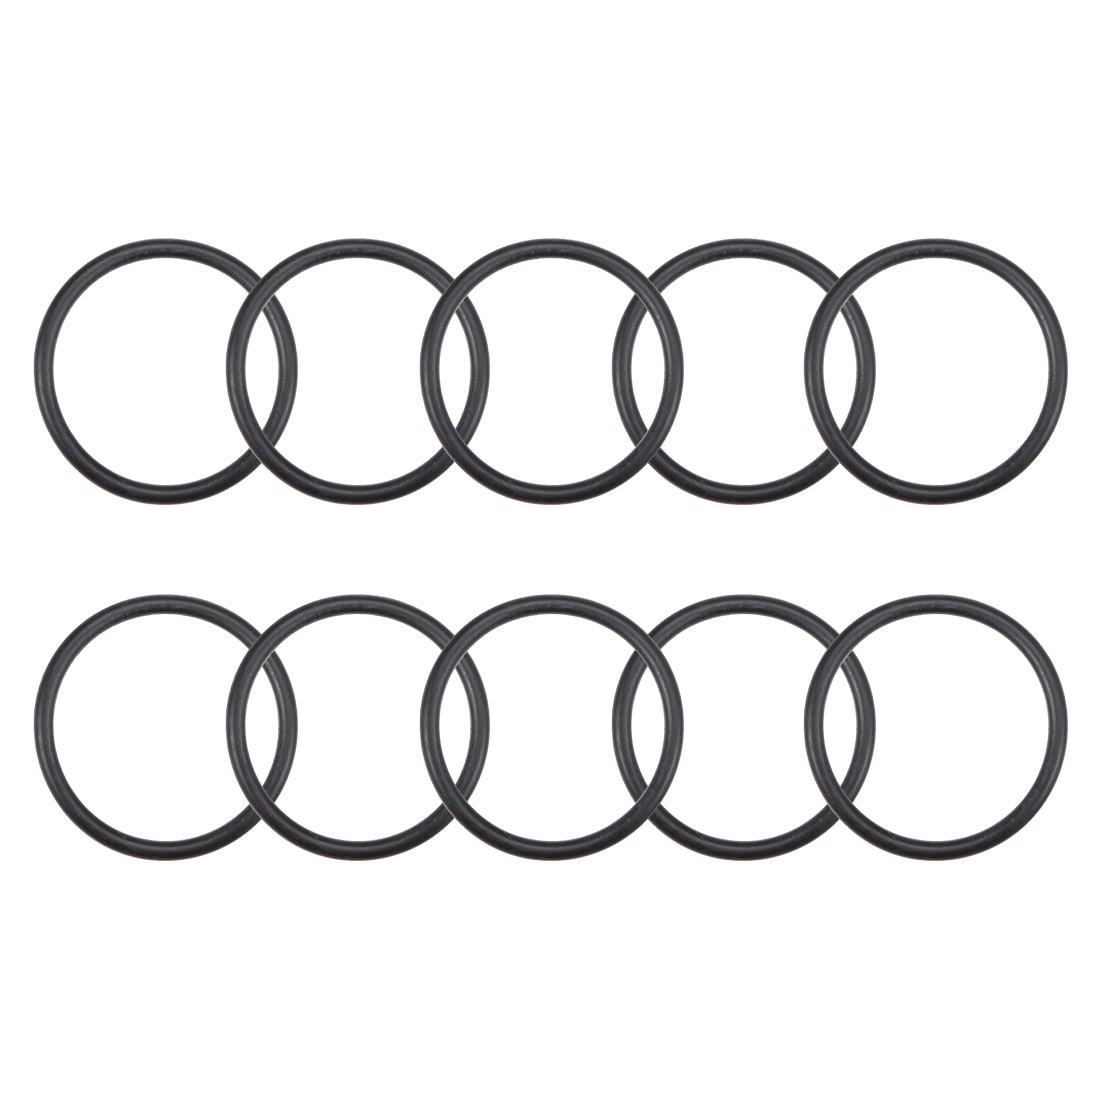 O-Rings Nitrile Rubber 25.8mm x 31.1mm x 2.65mm Round Seal Gasket 10 Pcs